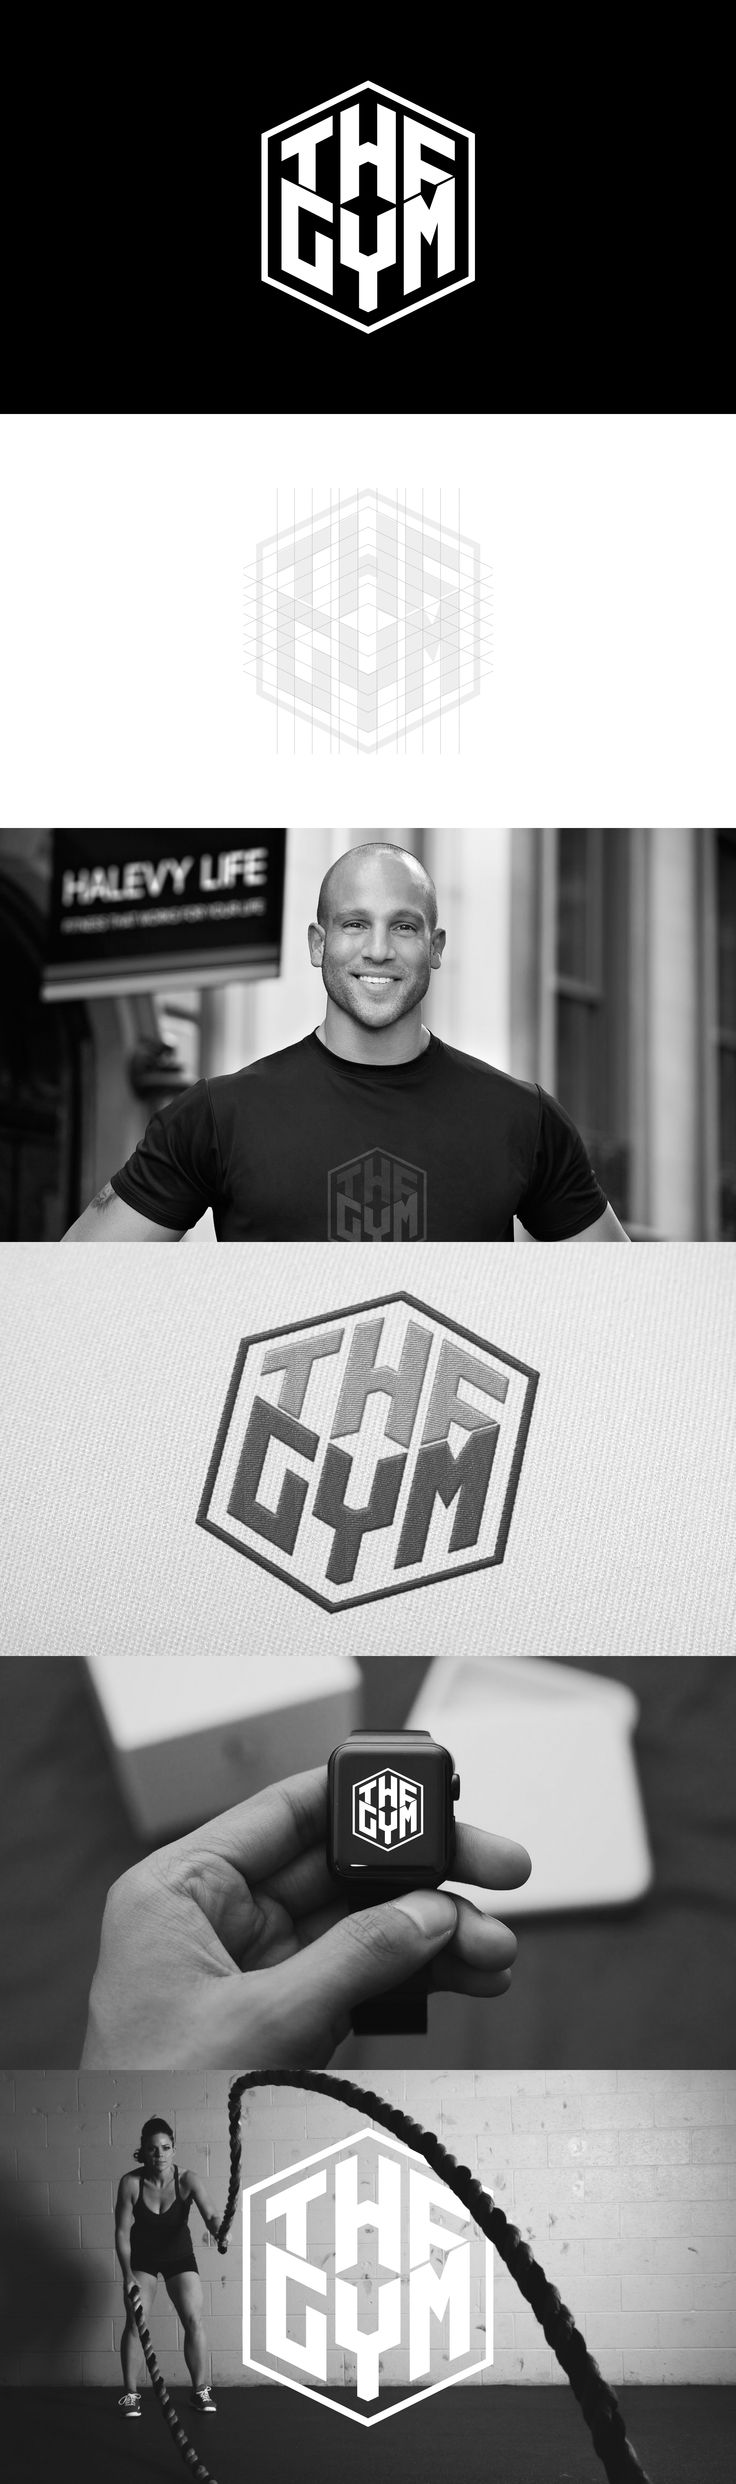 The Gym Logo Designed by Ricky Richards www.brandedbyrick.com